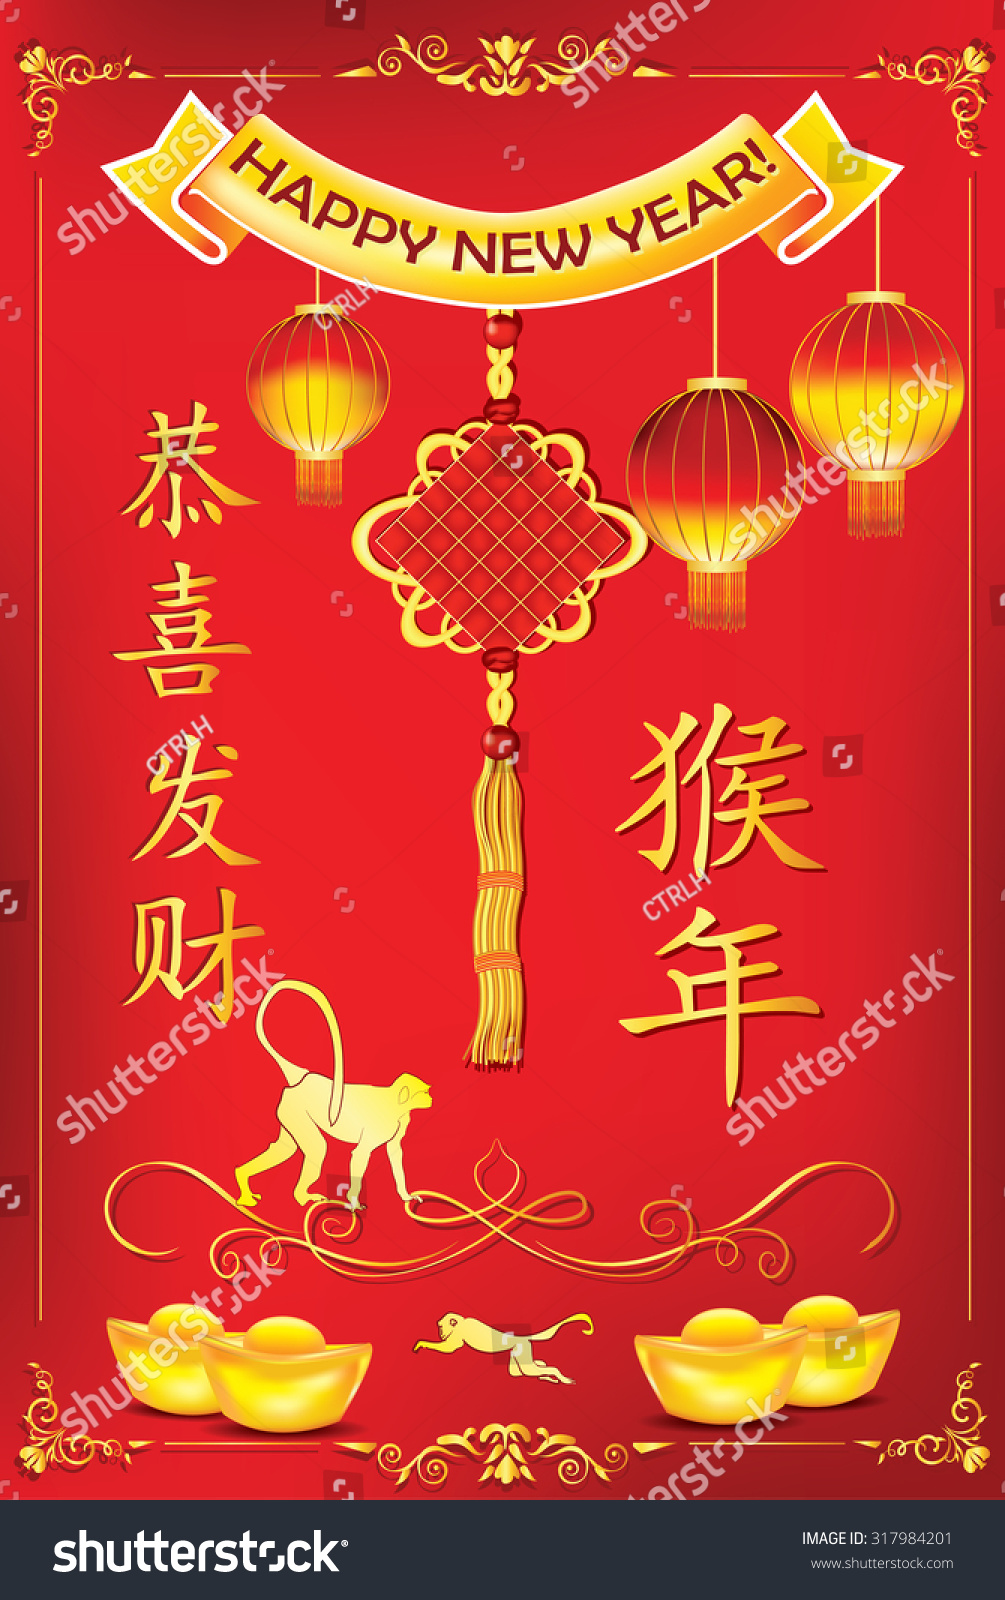 Chinese New Year Greeting Card For The Year Of The Monkey Text